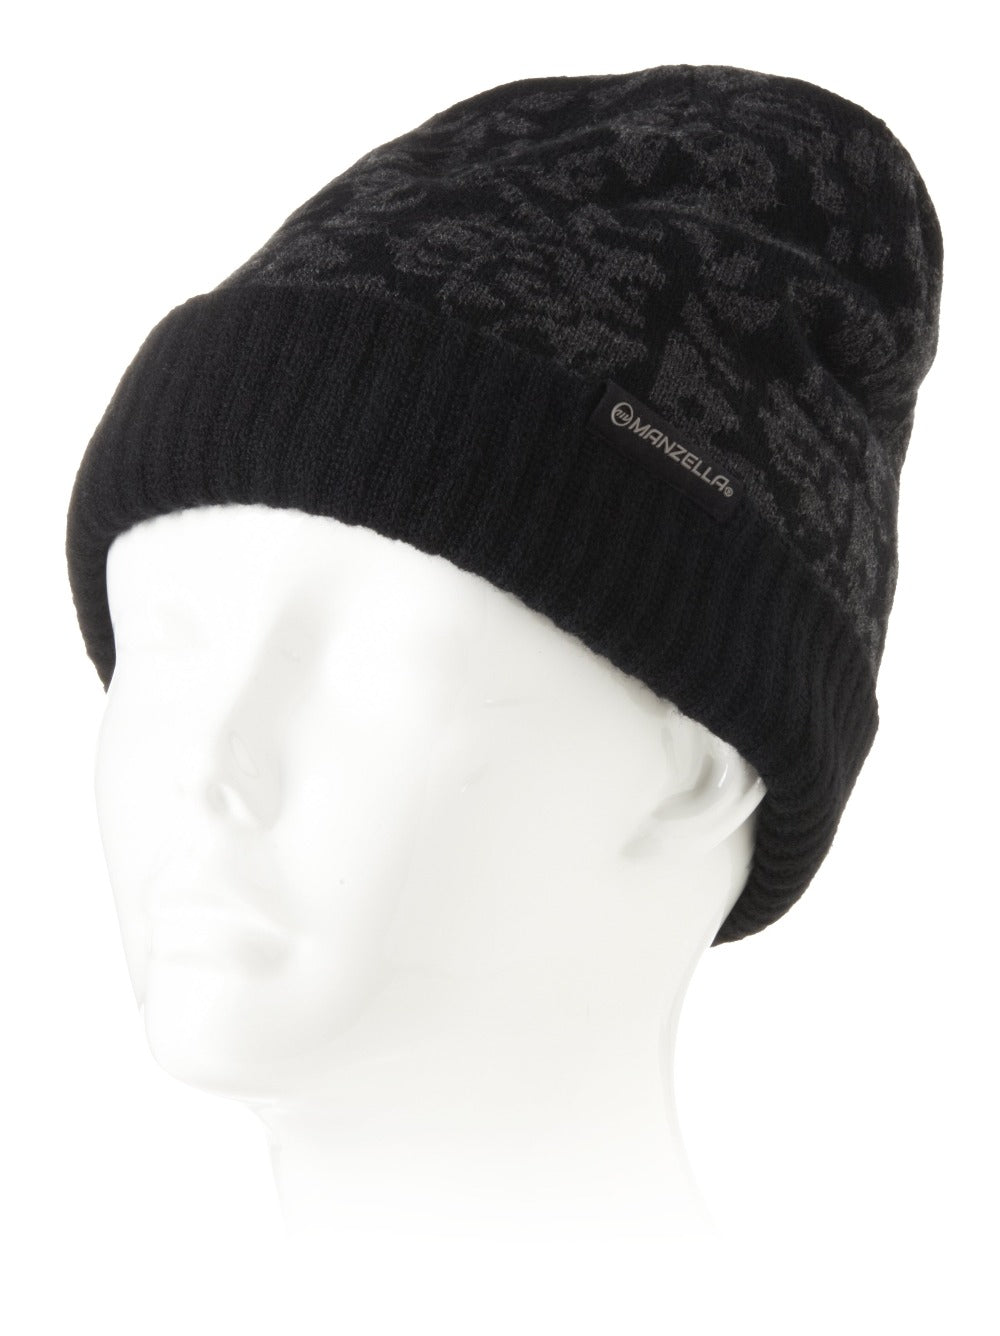 Women's Get Intense Hat Left Angled View